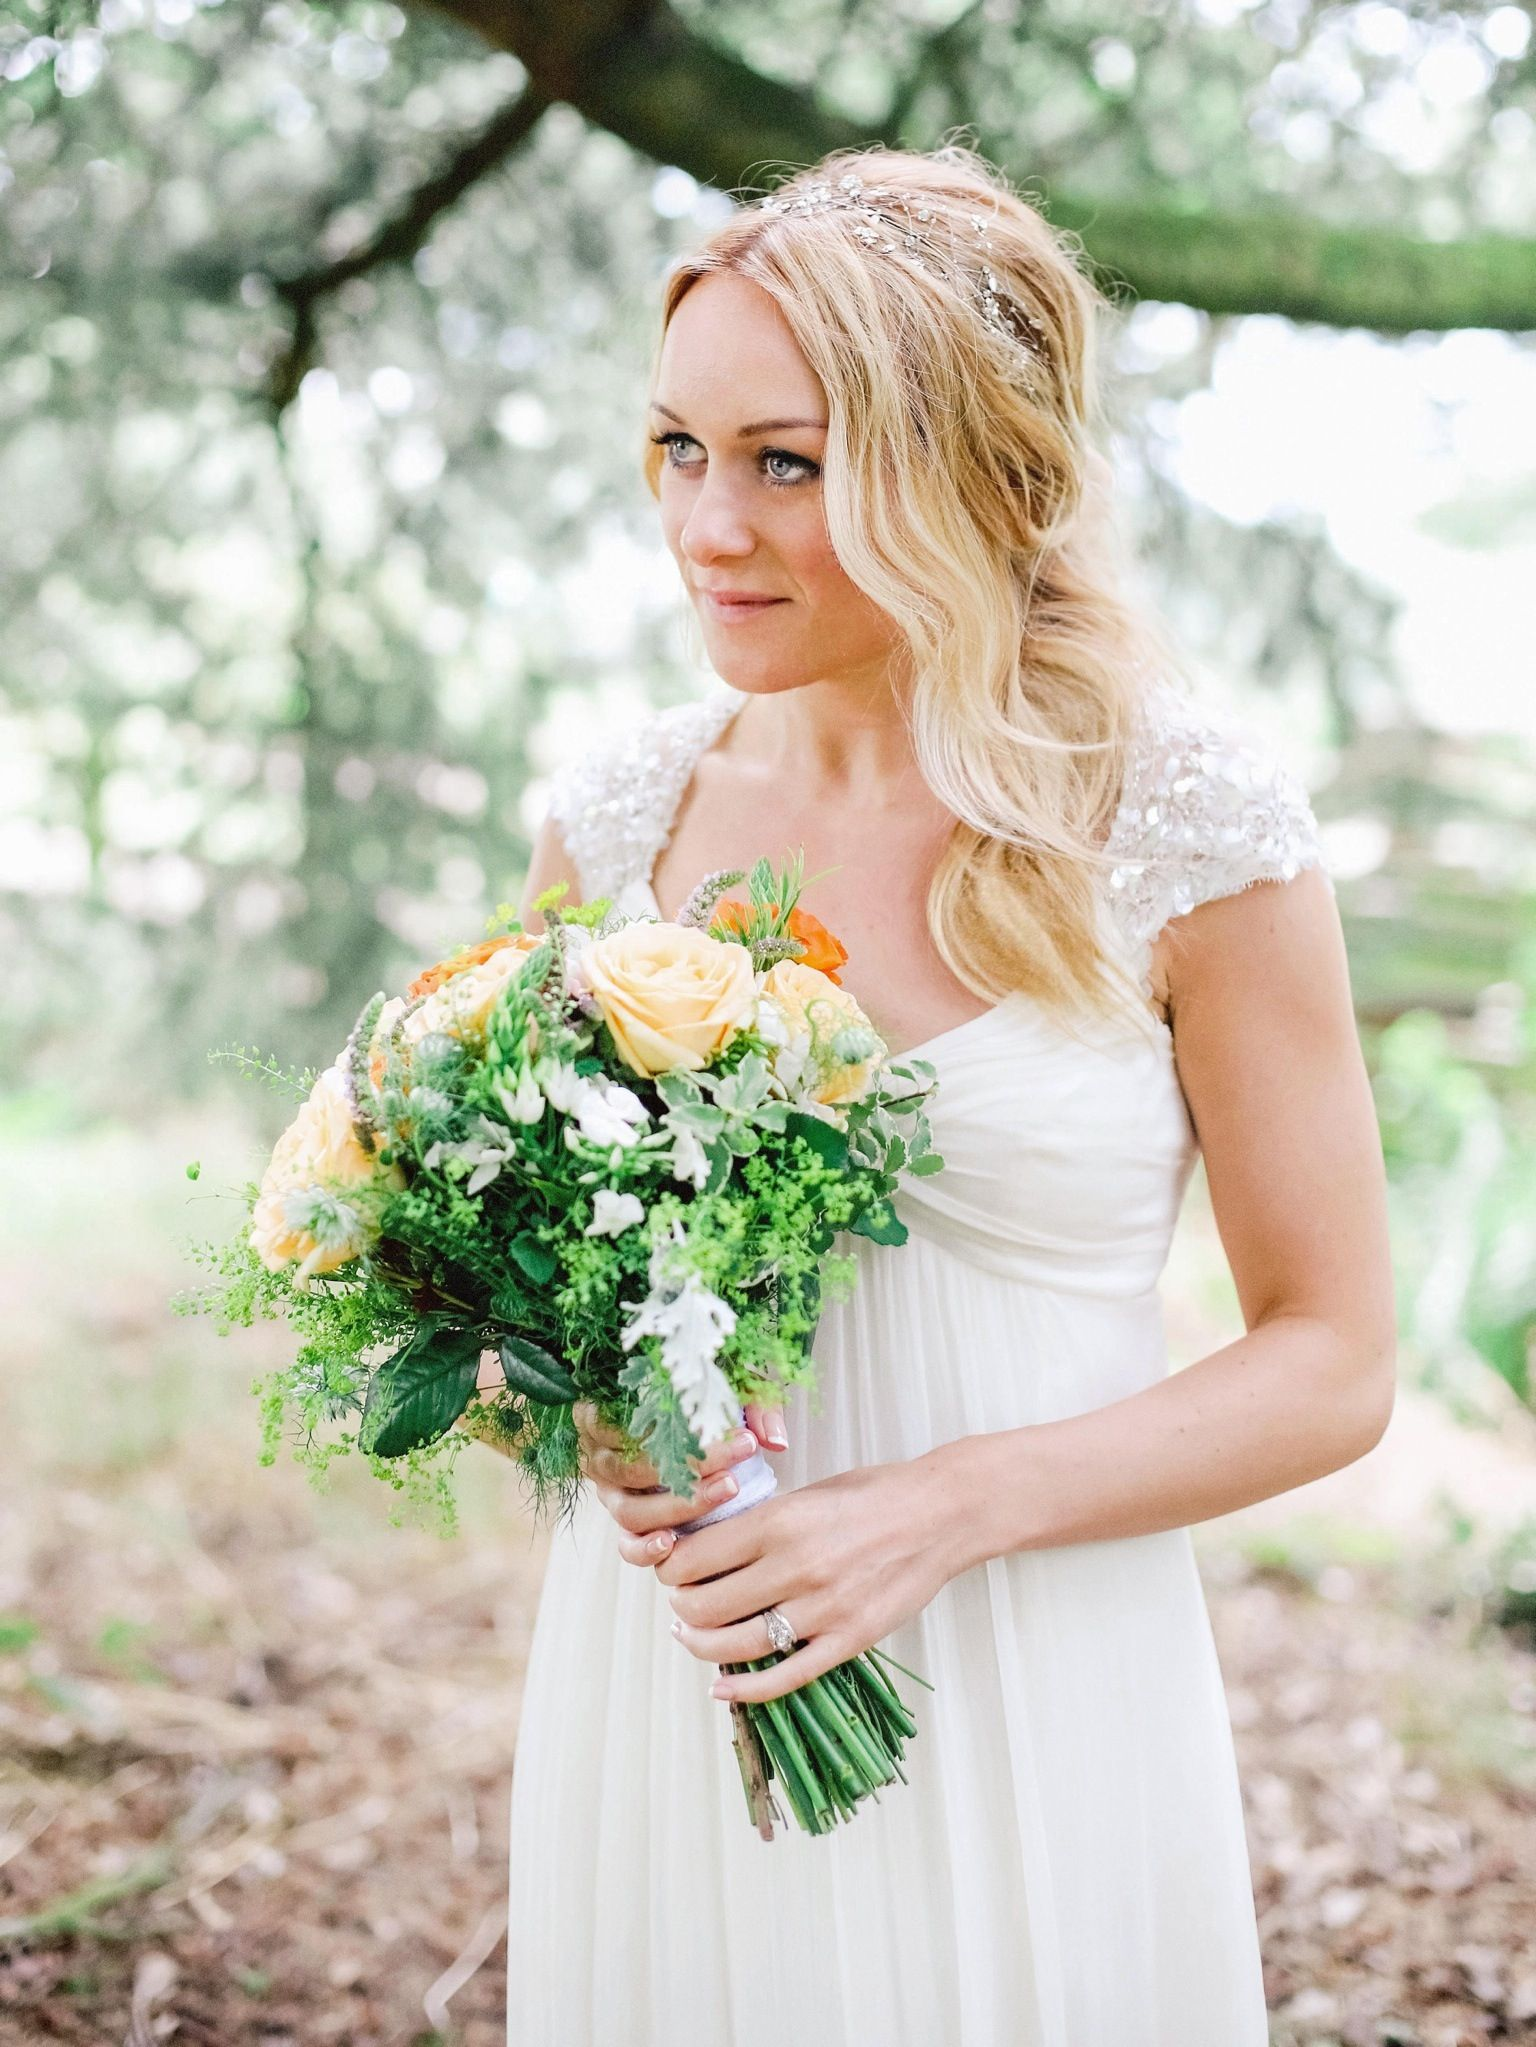 Jenny Packham bride. Messy ethereal wedding hair, outdoor woodland ...